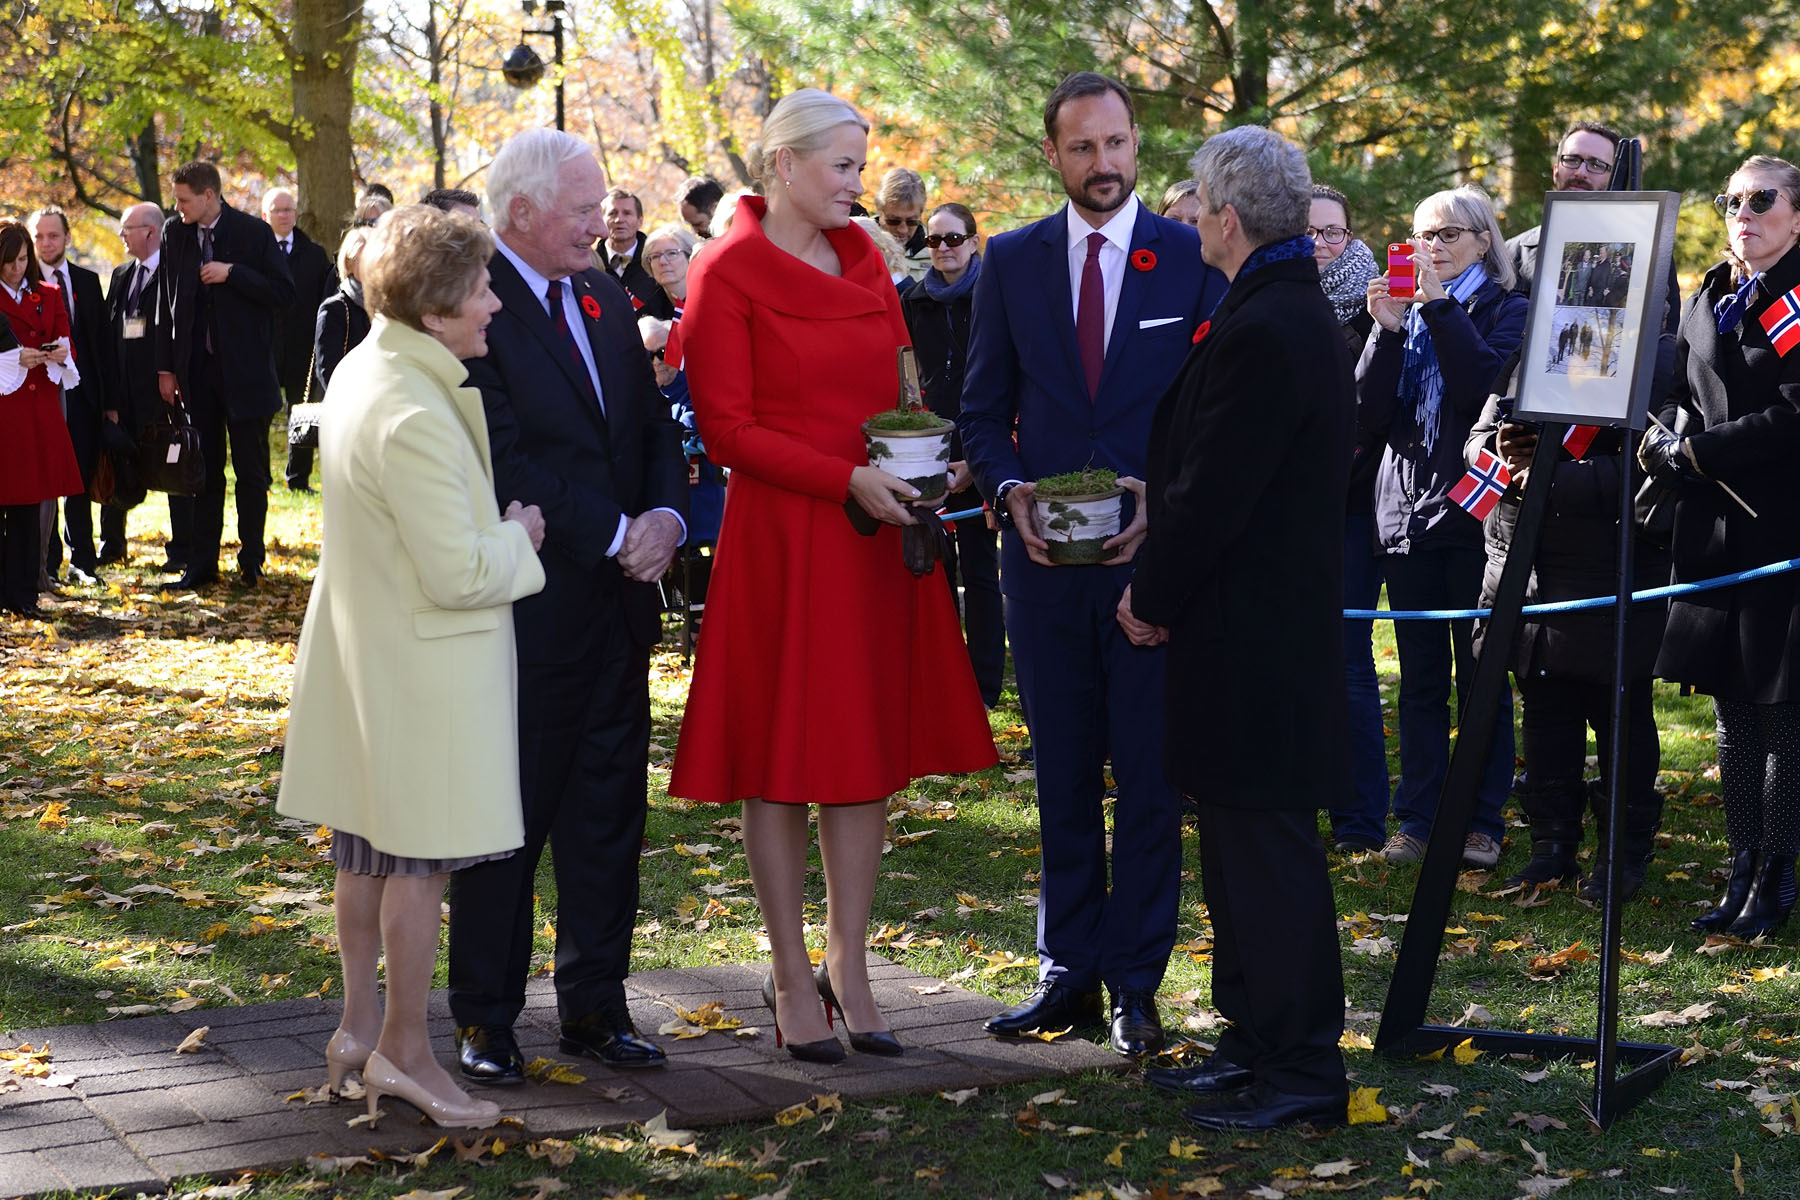 The tradition of ceremonially planting a tree to mark visits by heads of State began over a century ago. Since that time, planting ceremonial trees has become a Canadian tradition during State visits, symbolizing the living friendship and co-operation of nations.